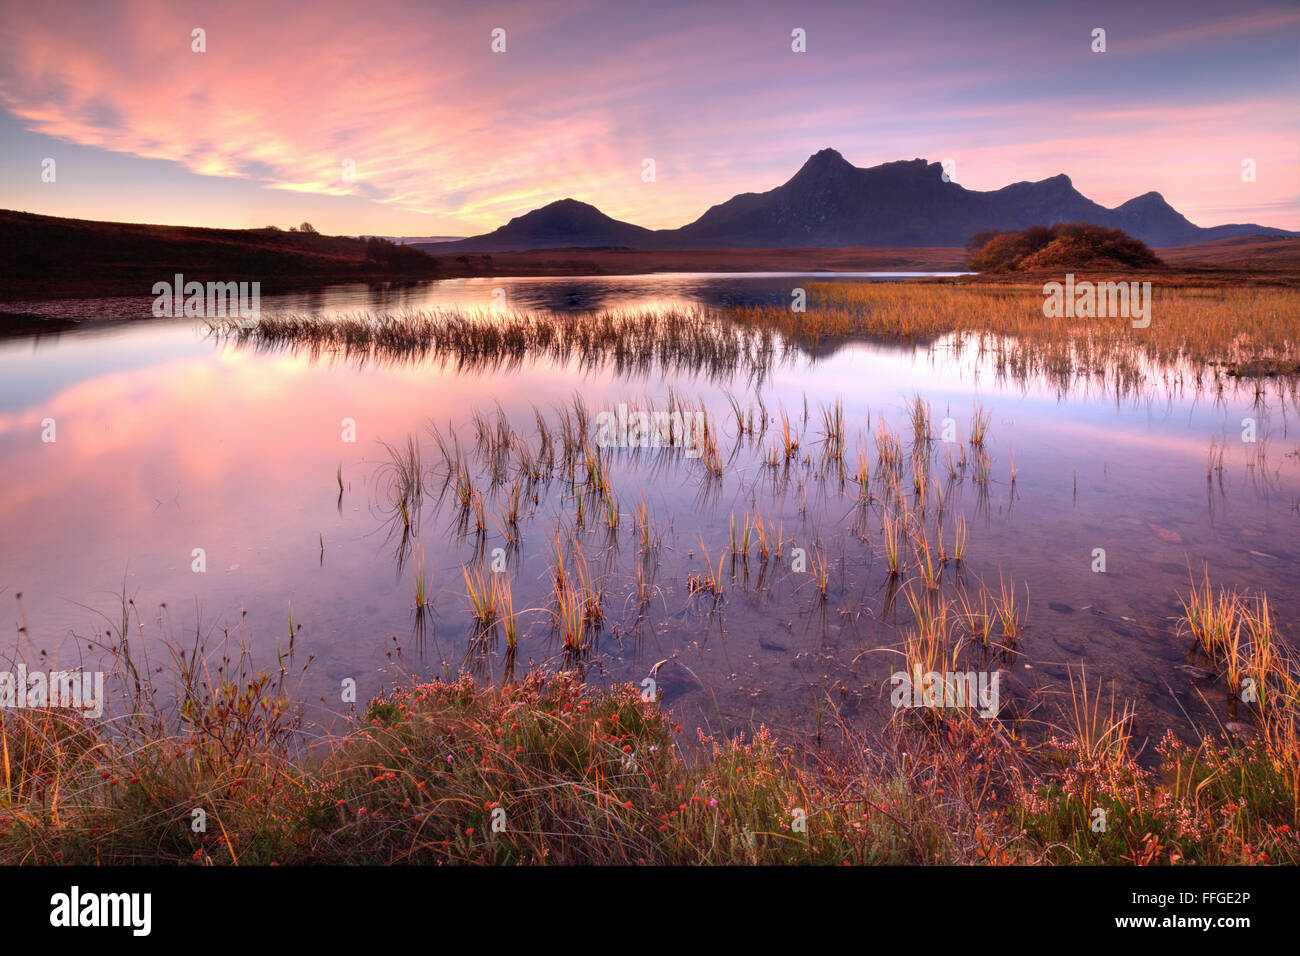 Sunrise over Ben Loyal, captured in early November  from the banks of Loch Hakel, near Tongue, in the North West - Stock Image